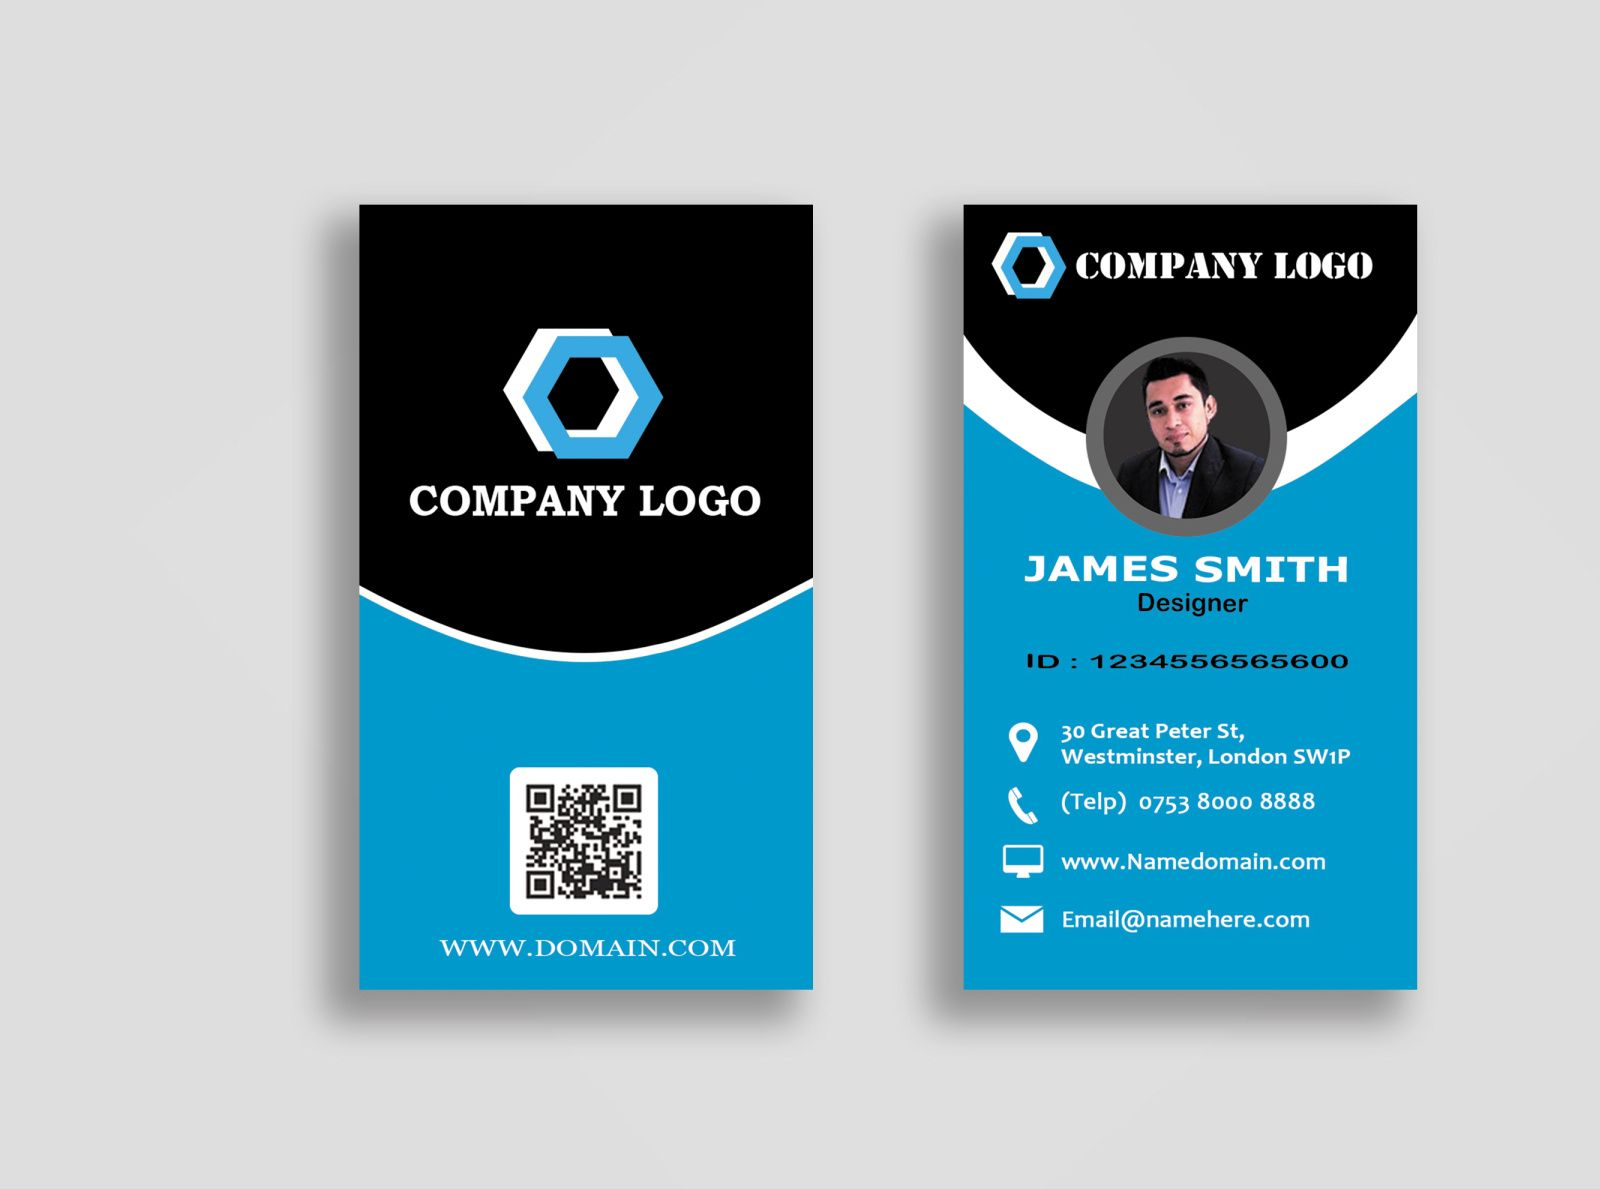 The Stunning Personal Business Cards Templatepolah Design On Dribbble With Business Card Template Photoshop Personal Business Cards Business Card Template Word